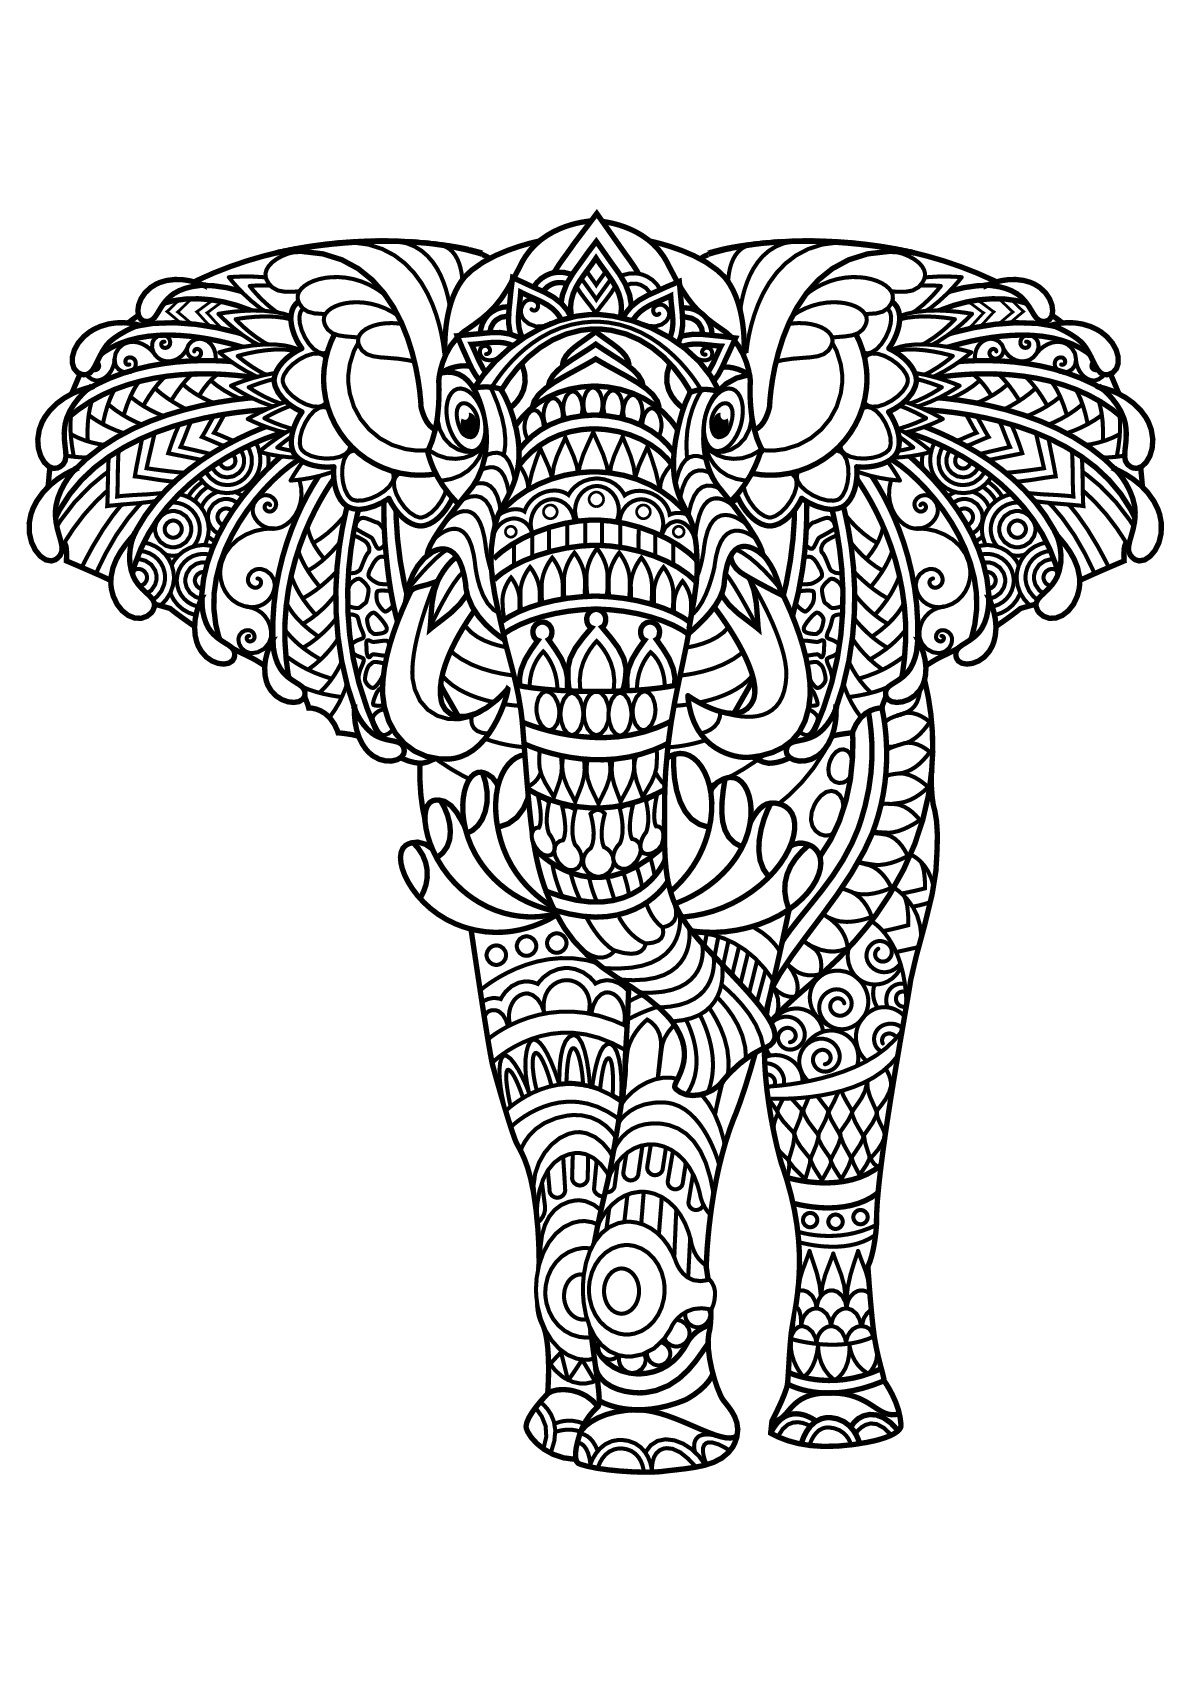 elephant coloring sheets printable elephants to color for children elephants kids coloring elephant printable sheets coloring